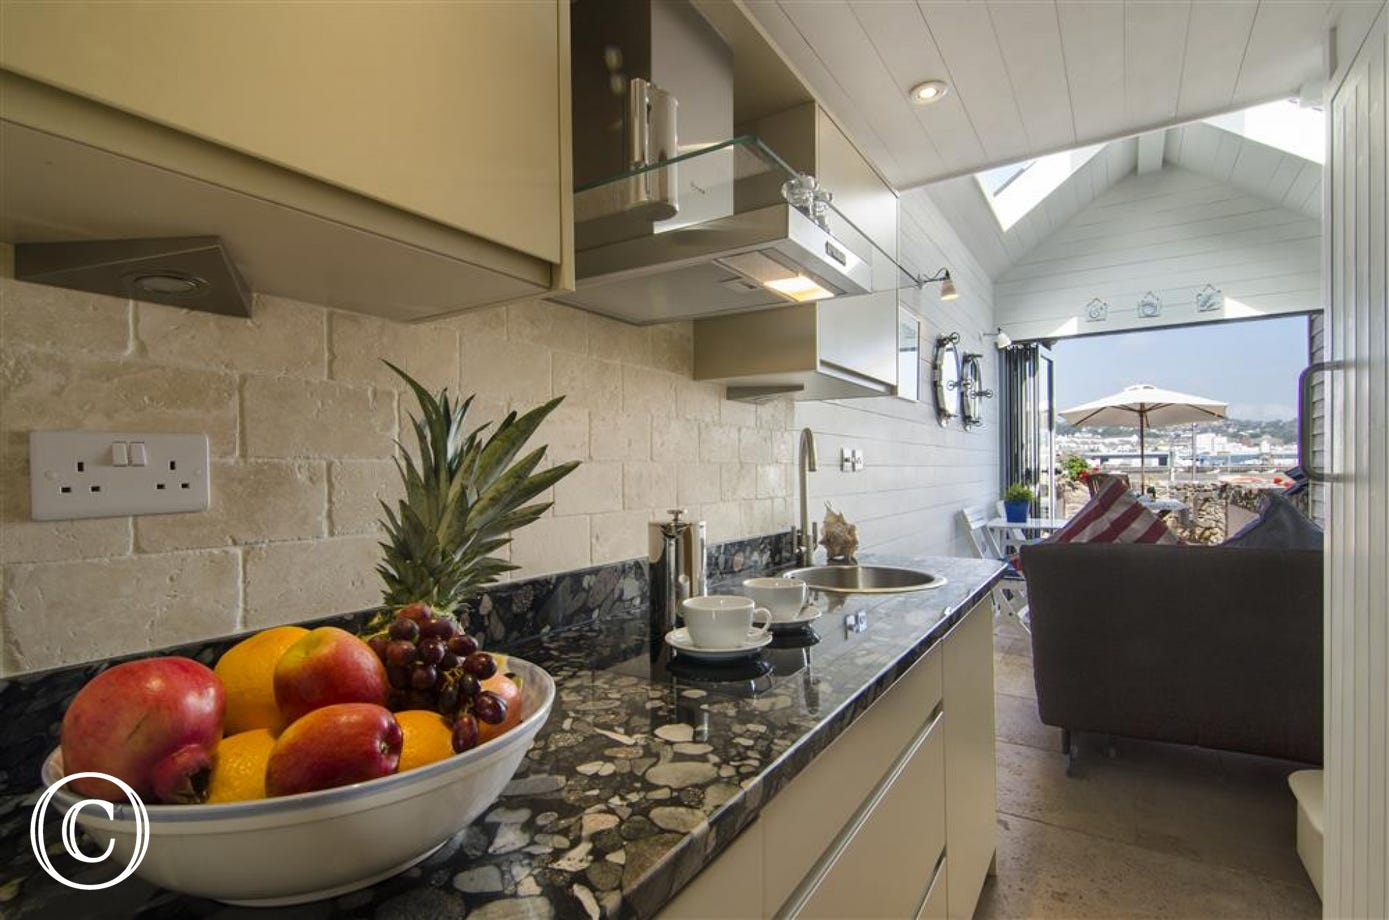 Luxury granite kitchen surfaces with 2 ring induction hob